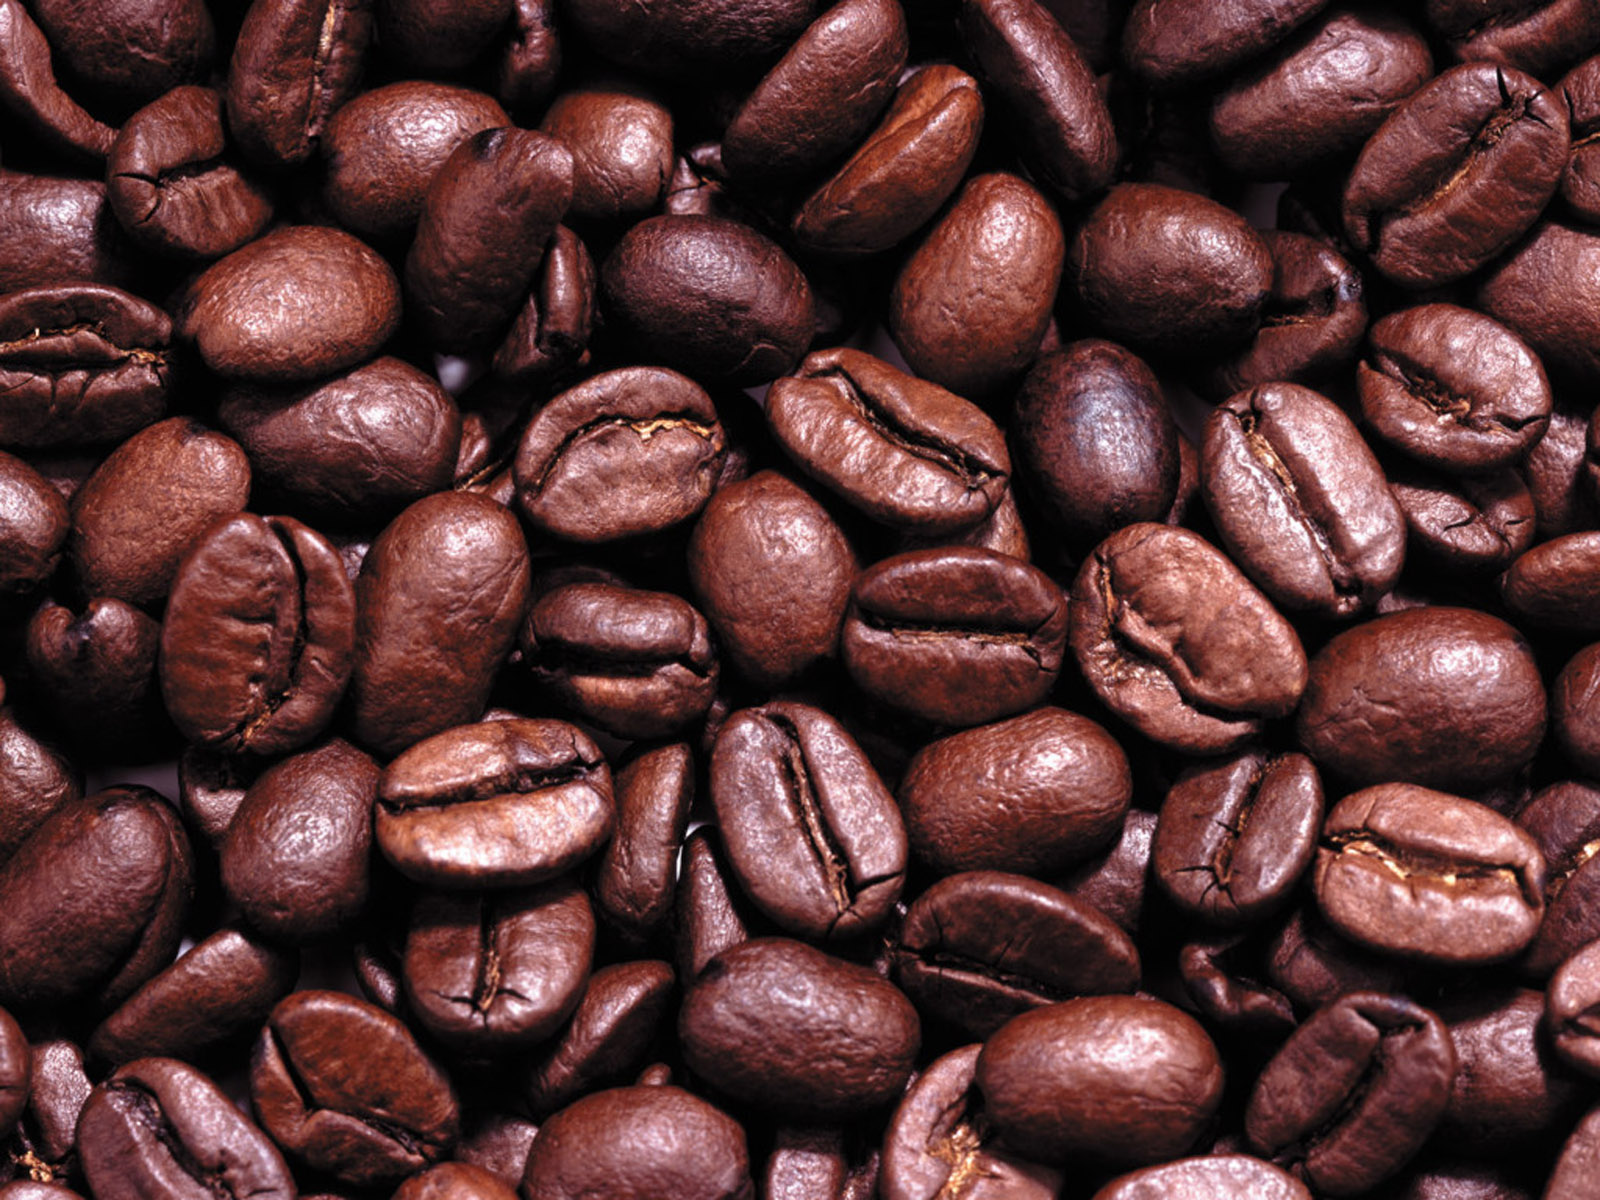 Coffee Beans Images 3.jpg